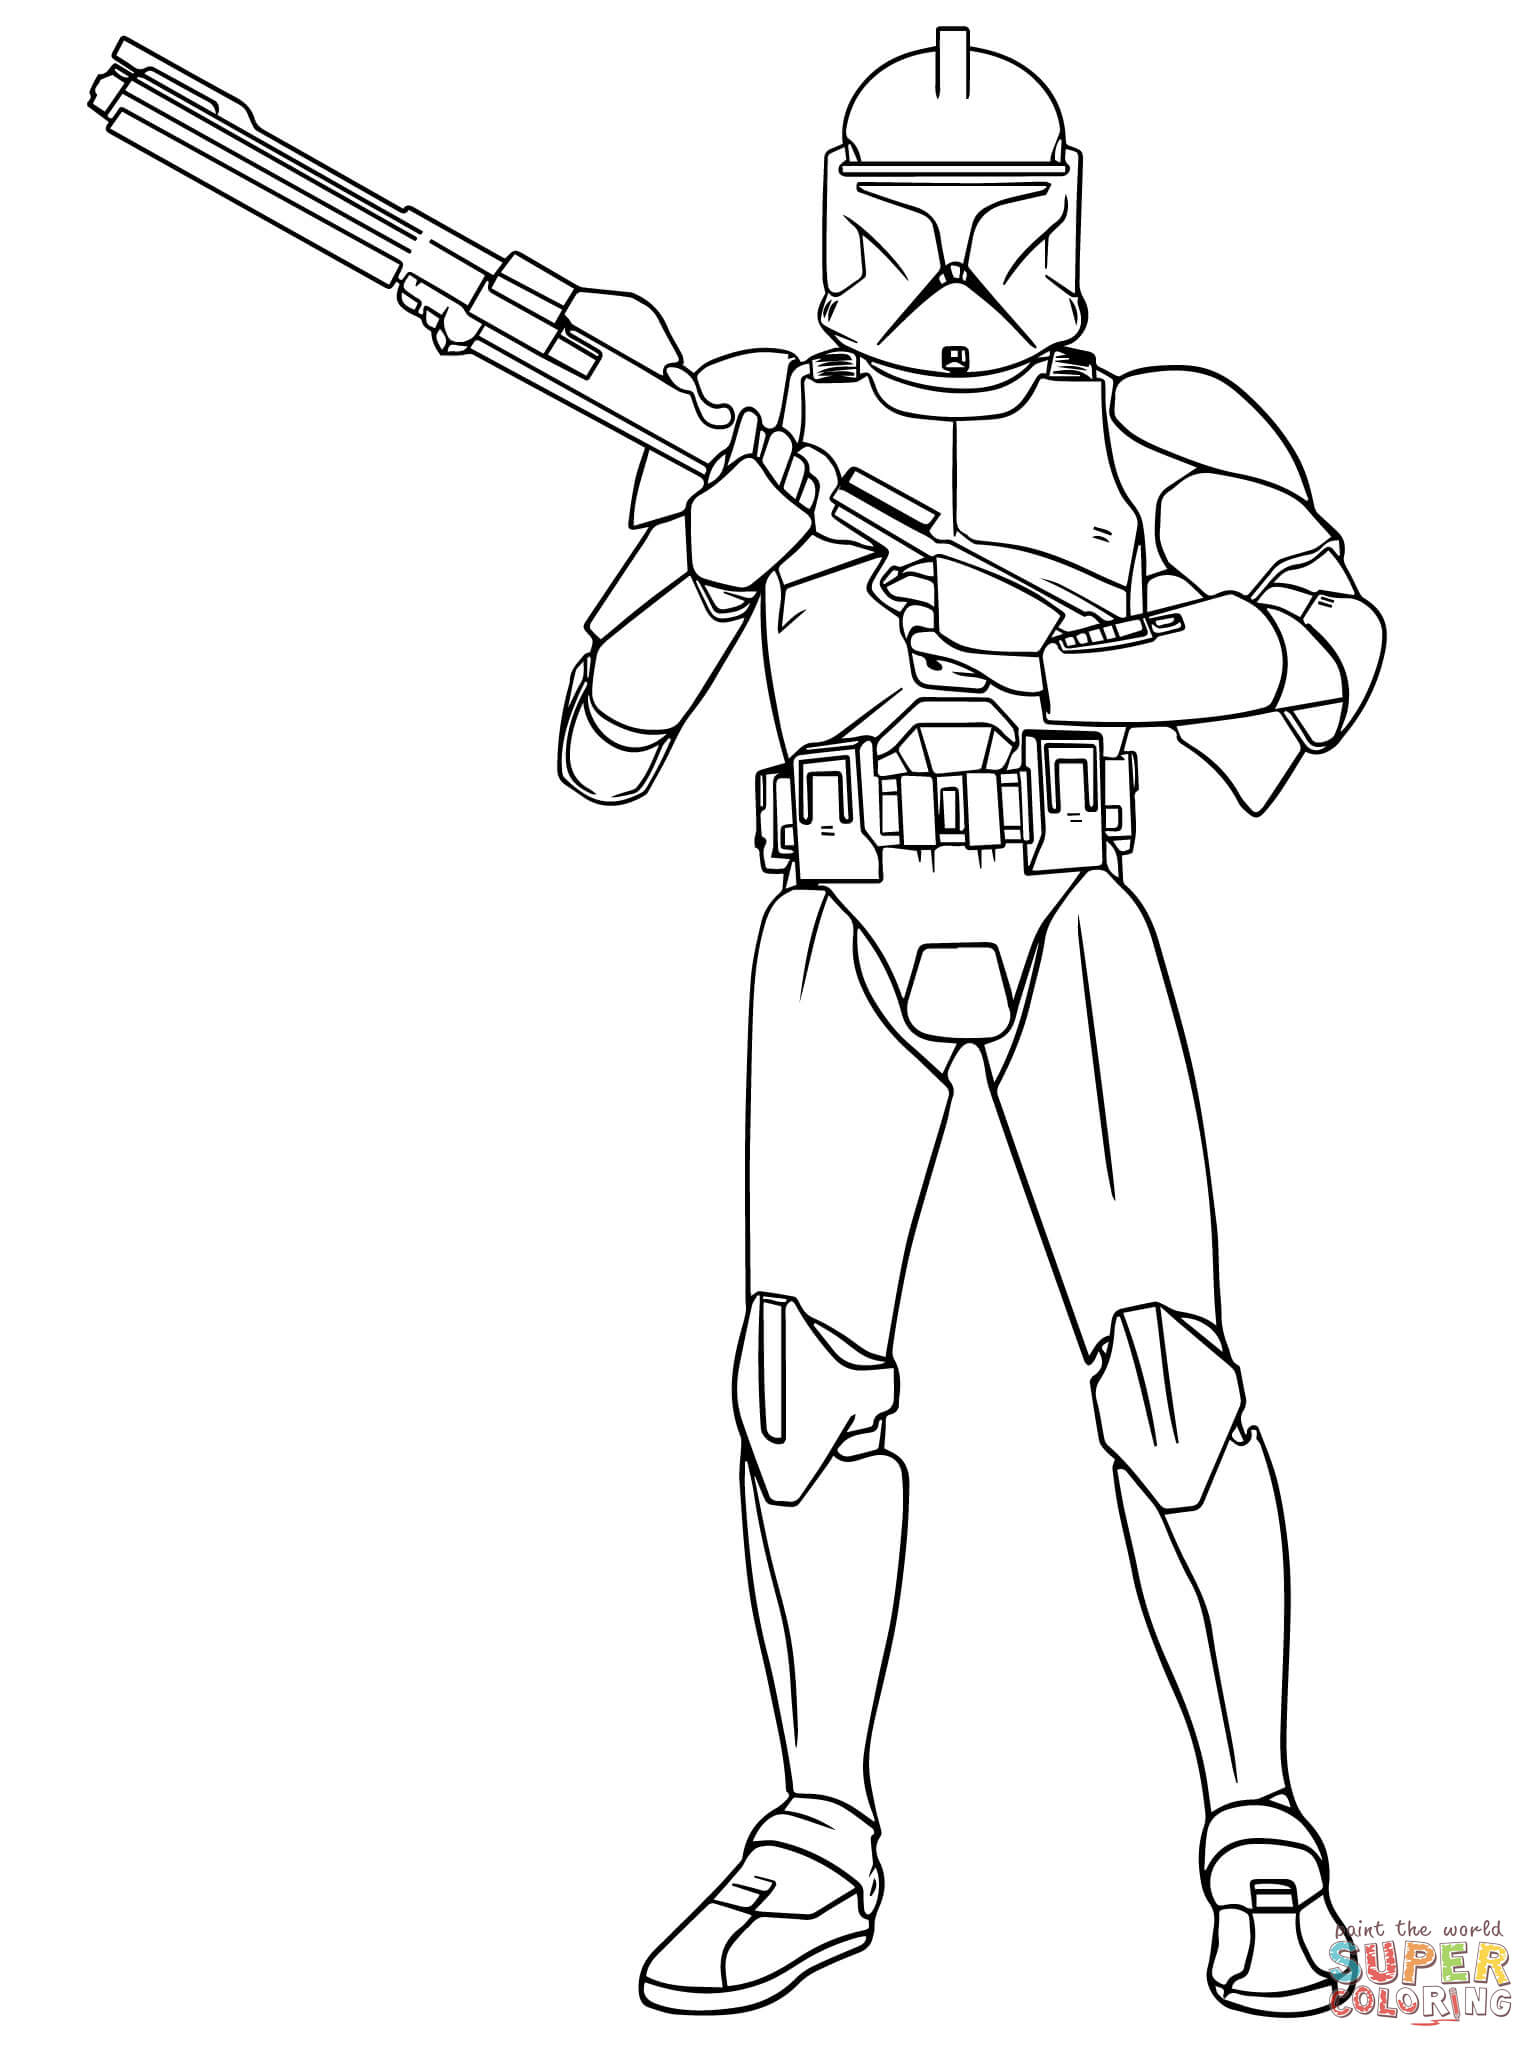 Boba Fett coloring page | Free Printable Coloring Pages